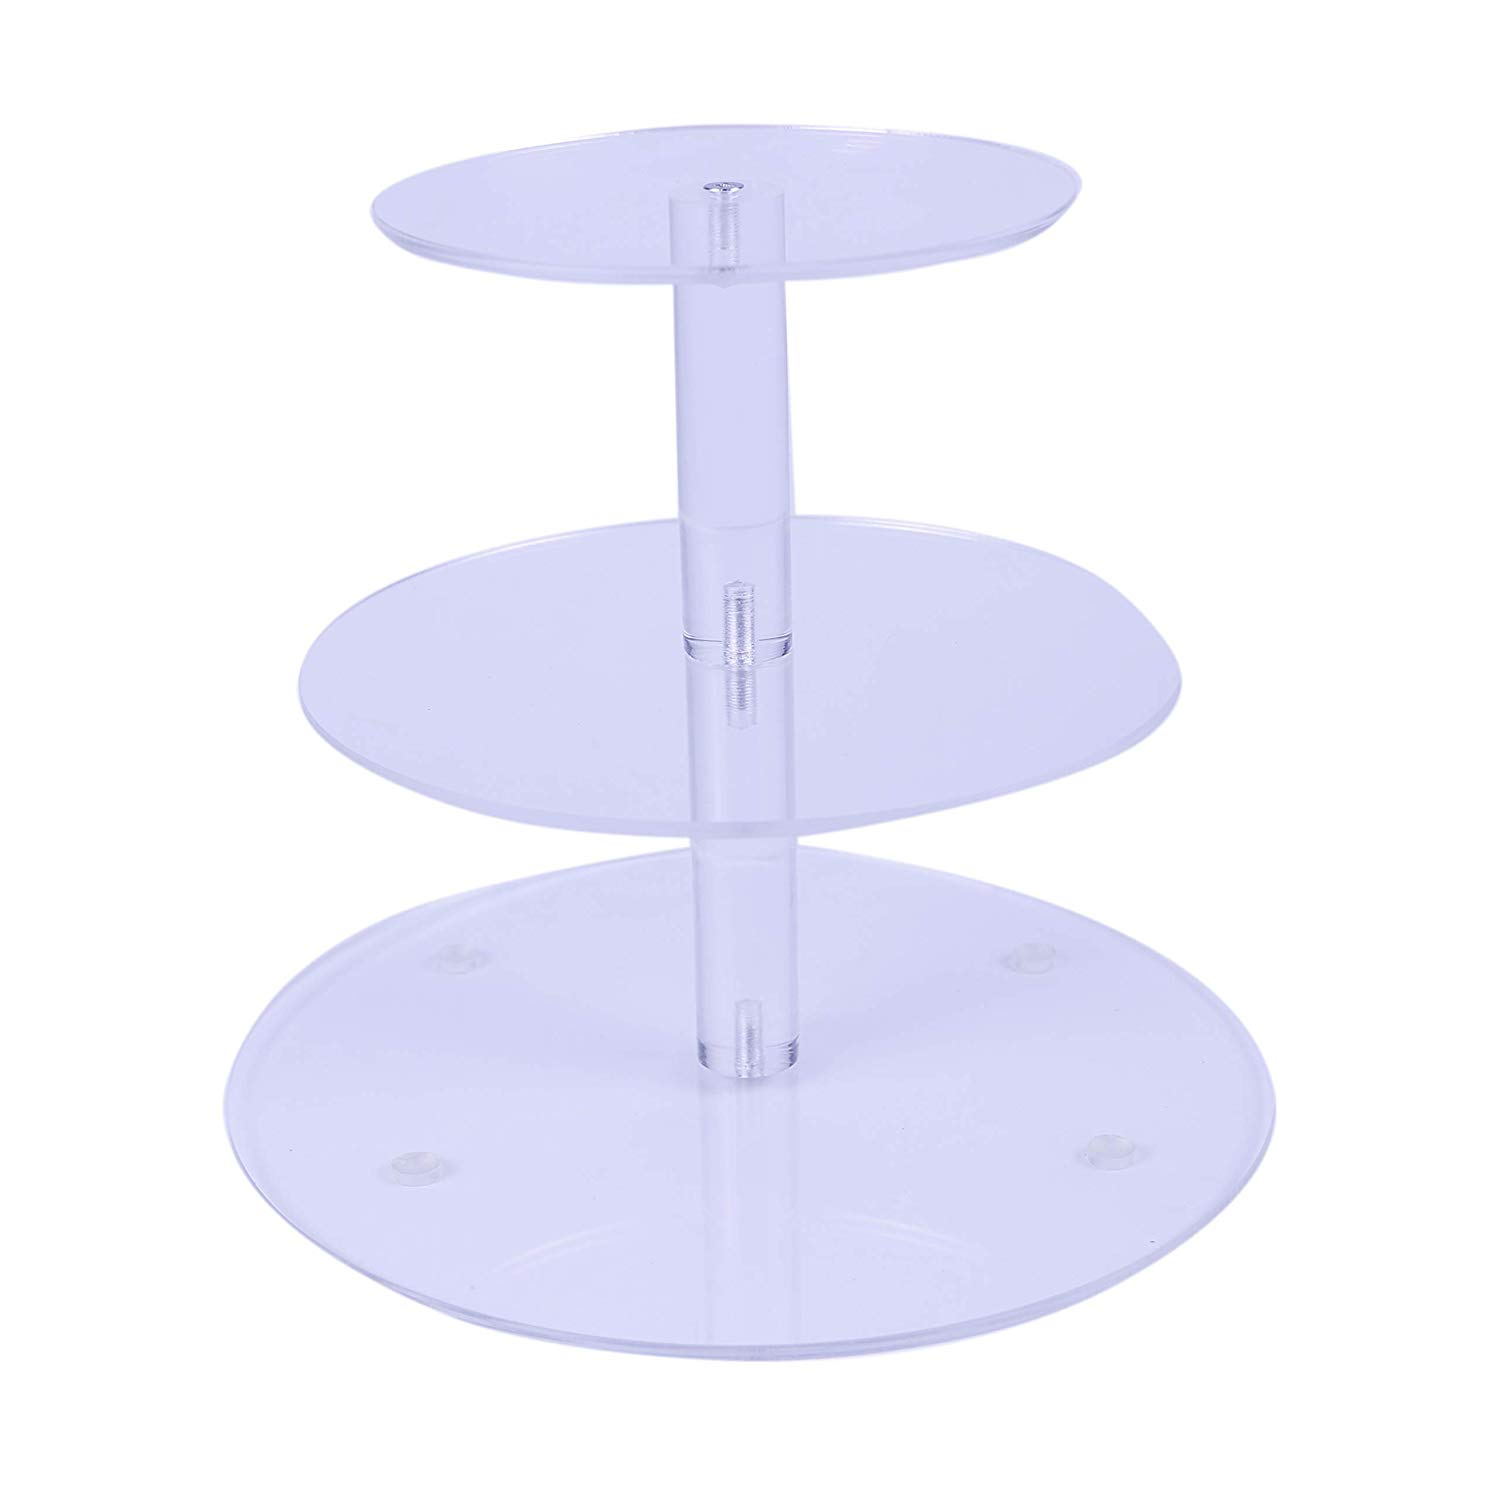 """VONTERP 3 tier acrylic cupcake stand Clear Acrylic Cupcake Stand Wedding Birthday Display stand ((3 tier round (4.7"""" Layer spacing))"""